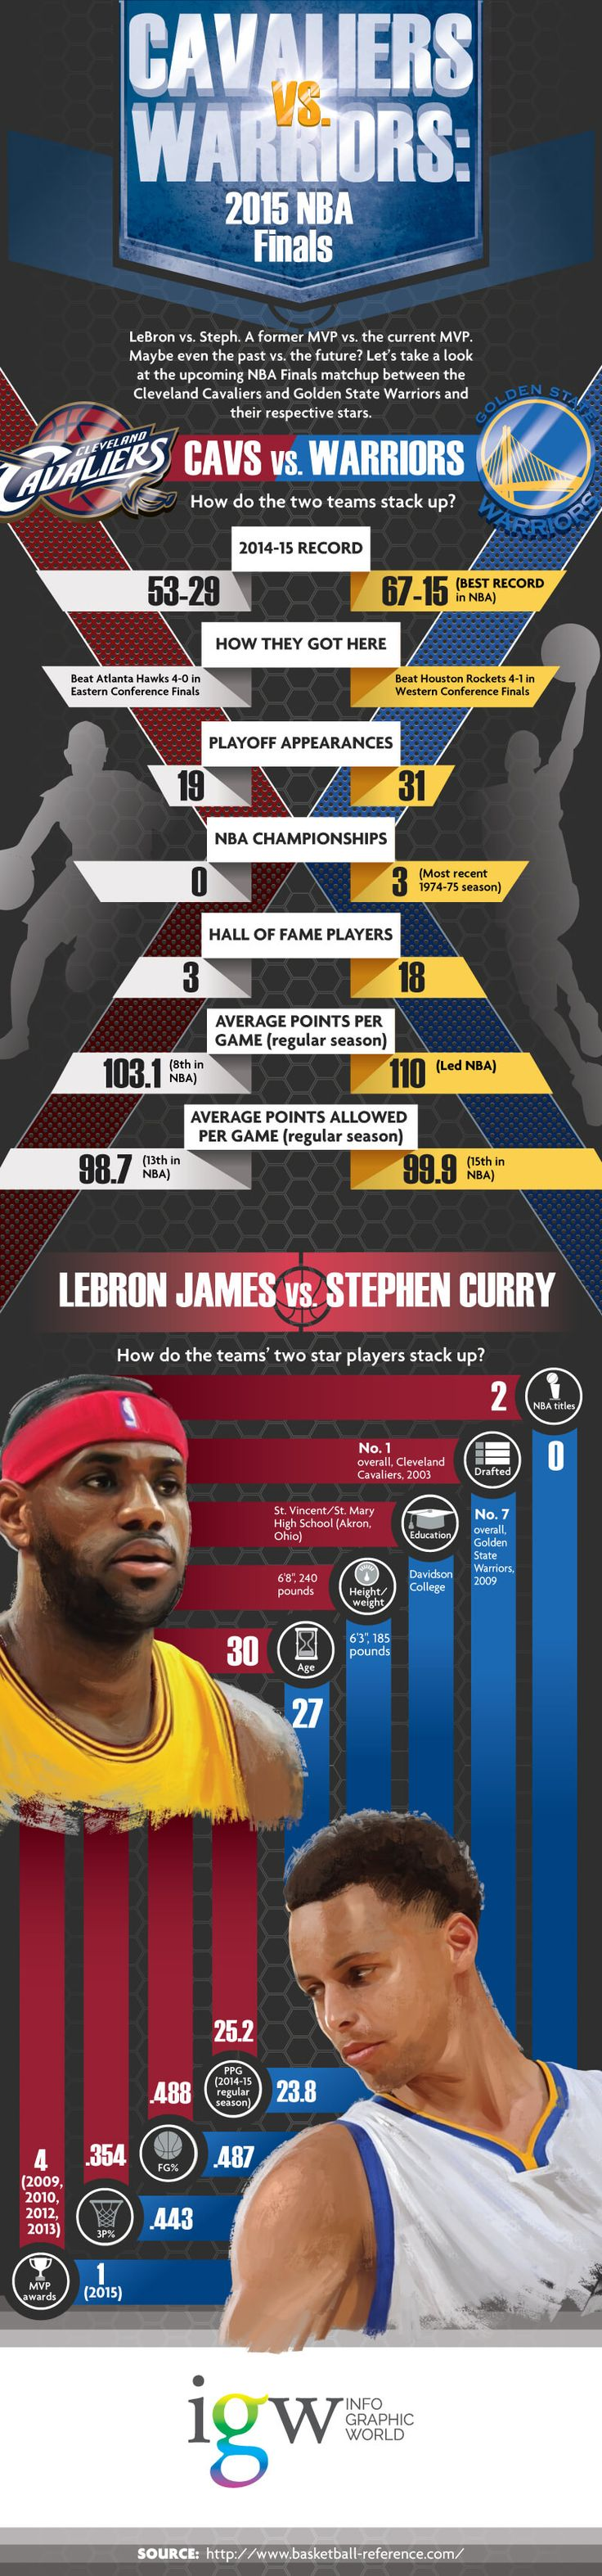 The Cavs' LeBron James will play in his fifth straight NBA Finals, while the Warriors' Stephen Curry is there for the first time. Golden State last won an NBA championship in 1975, and the Cavs never have. Which team has the edge and which superstar are you rooting for? #nba